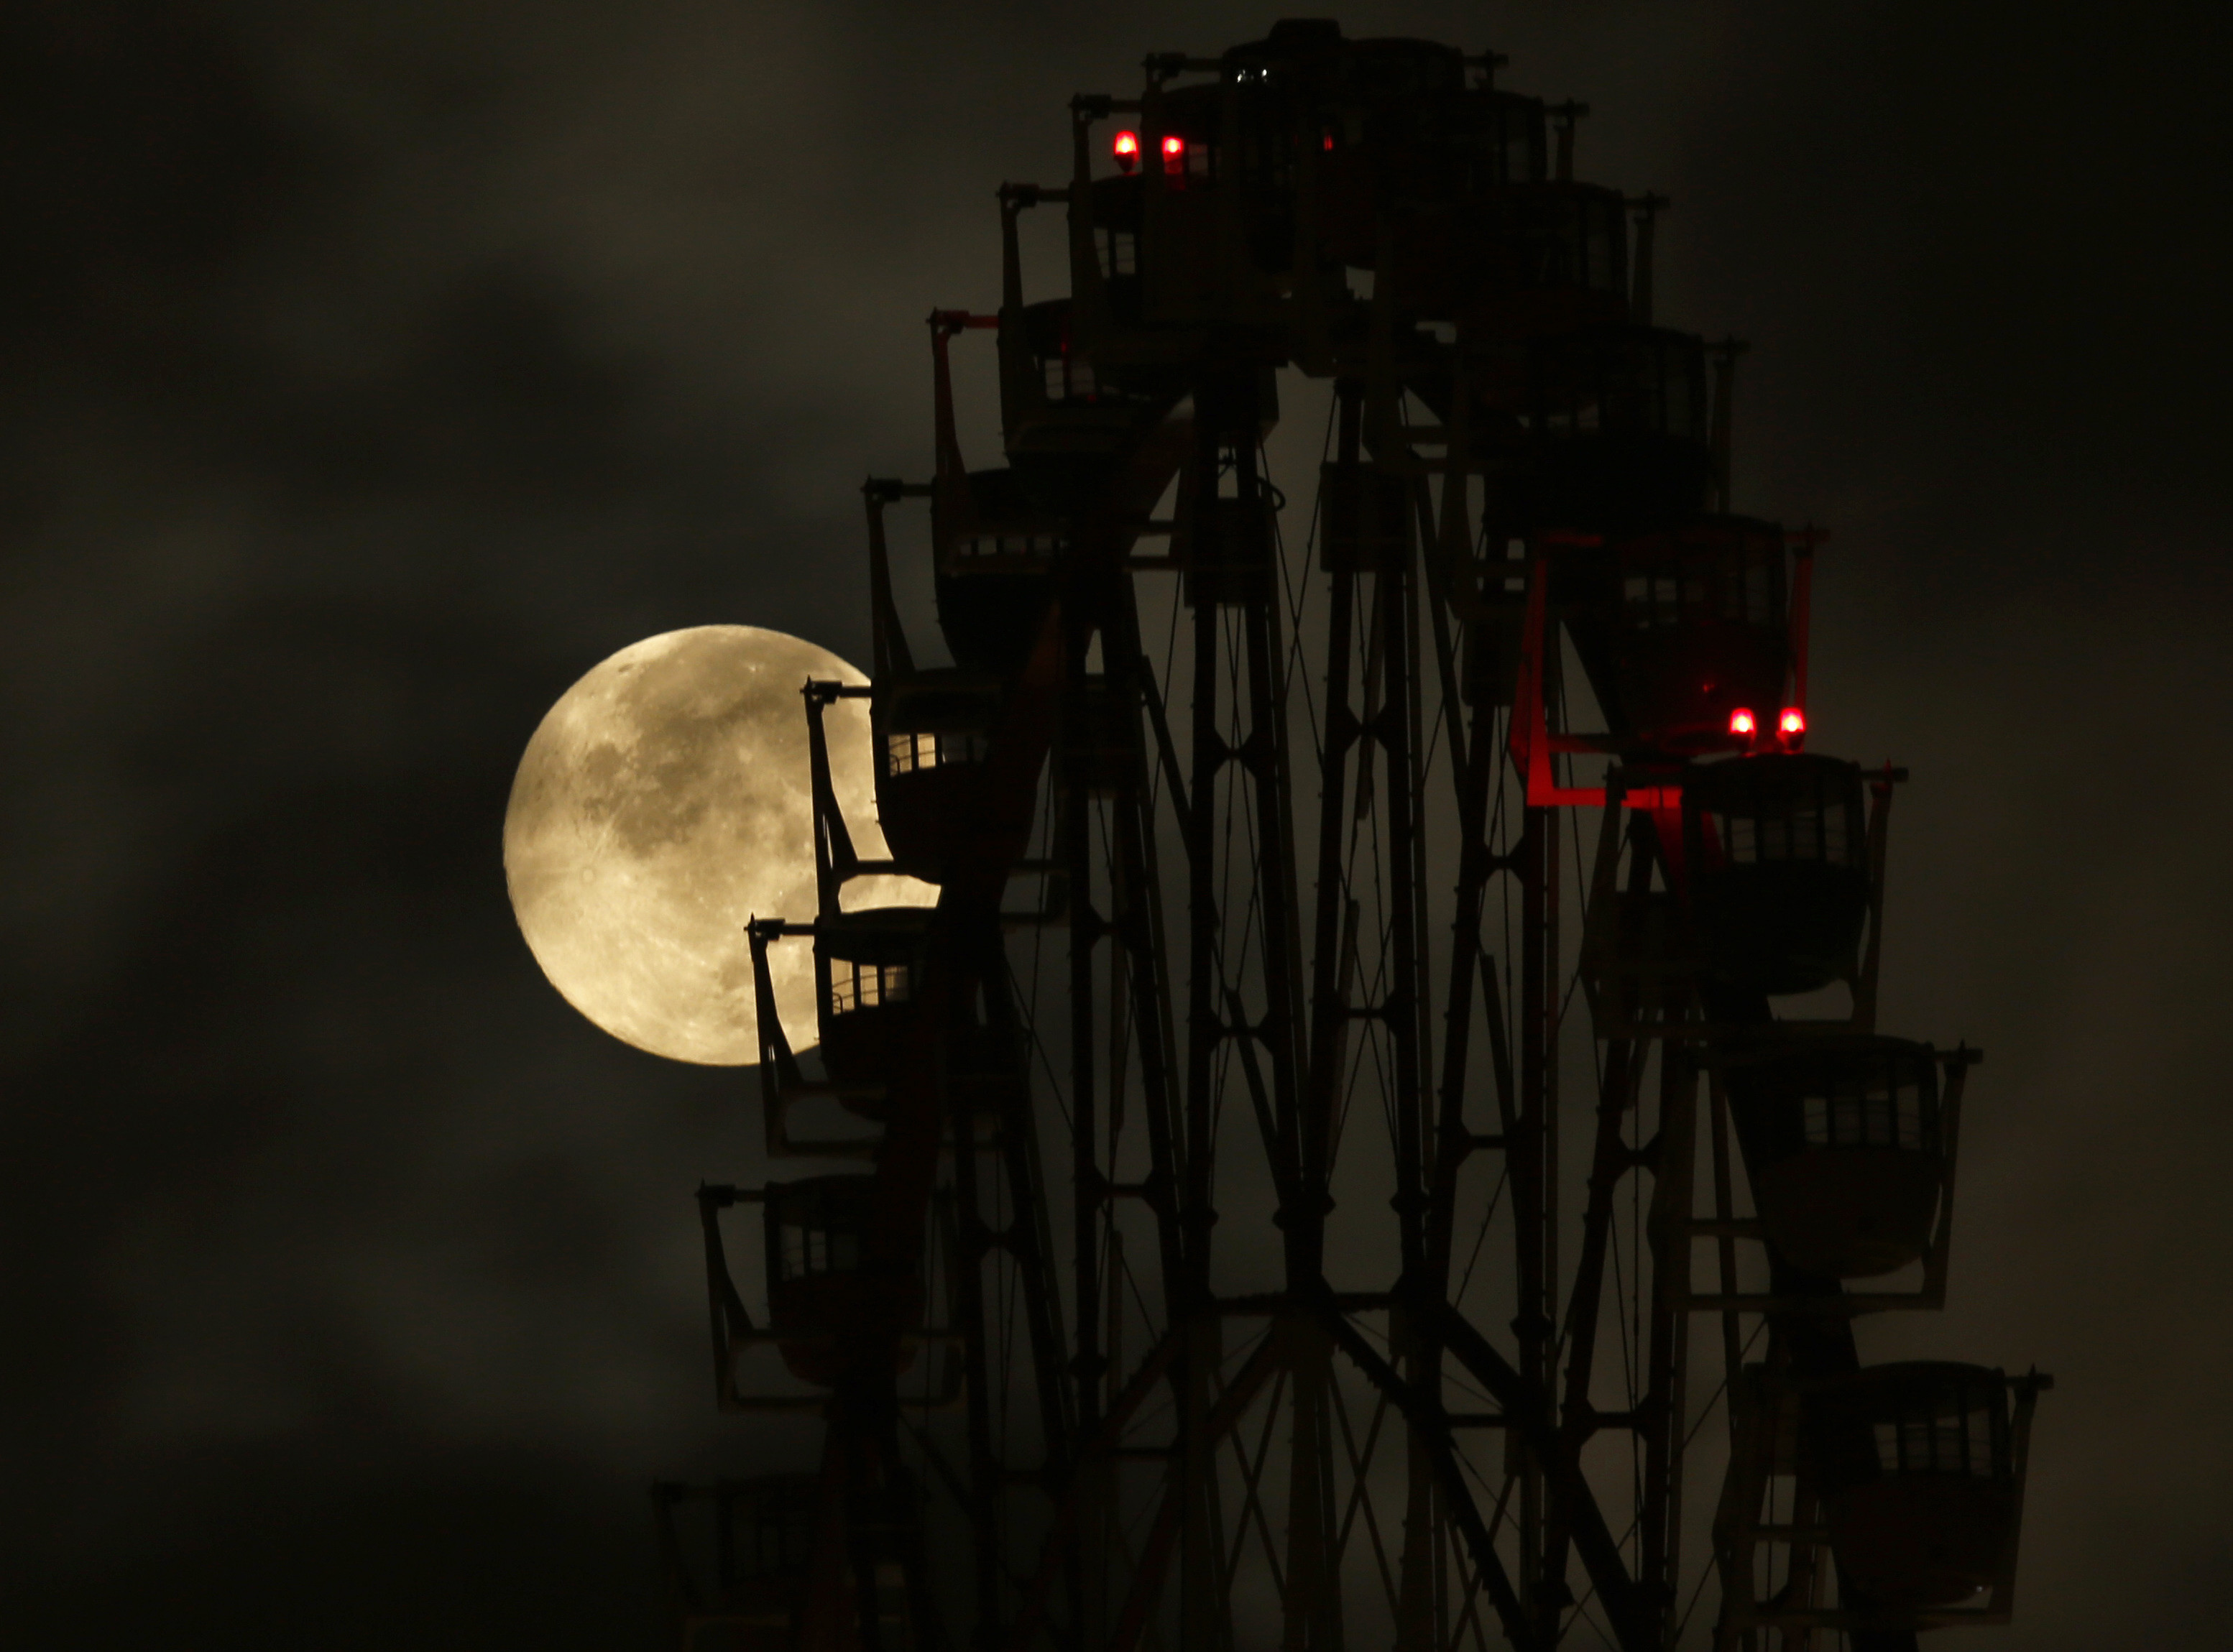 The supermoon is seen behind a ferris wheel in Tokyo August 11, 2014. The astronomical event occurs when the moon is closest to the Earth in its orbit, making it appear much larger and brighter than usual. REUTERS/Toru Hanai (JAPAN - Tags: ENVIRONMENT SOCIETY) - RTR41W7U